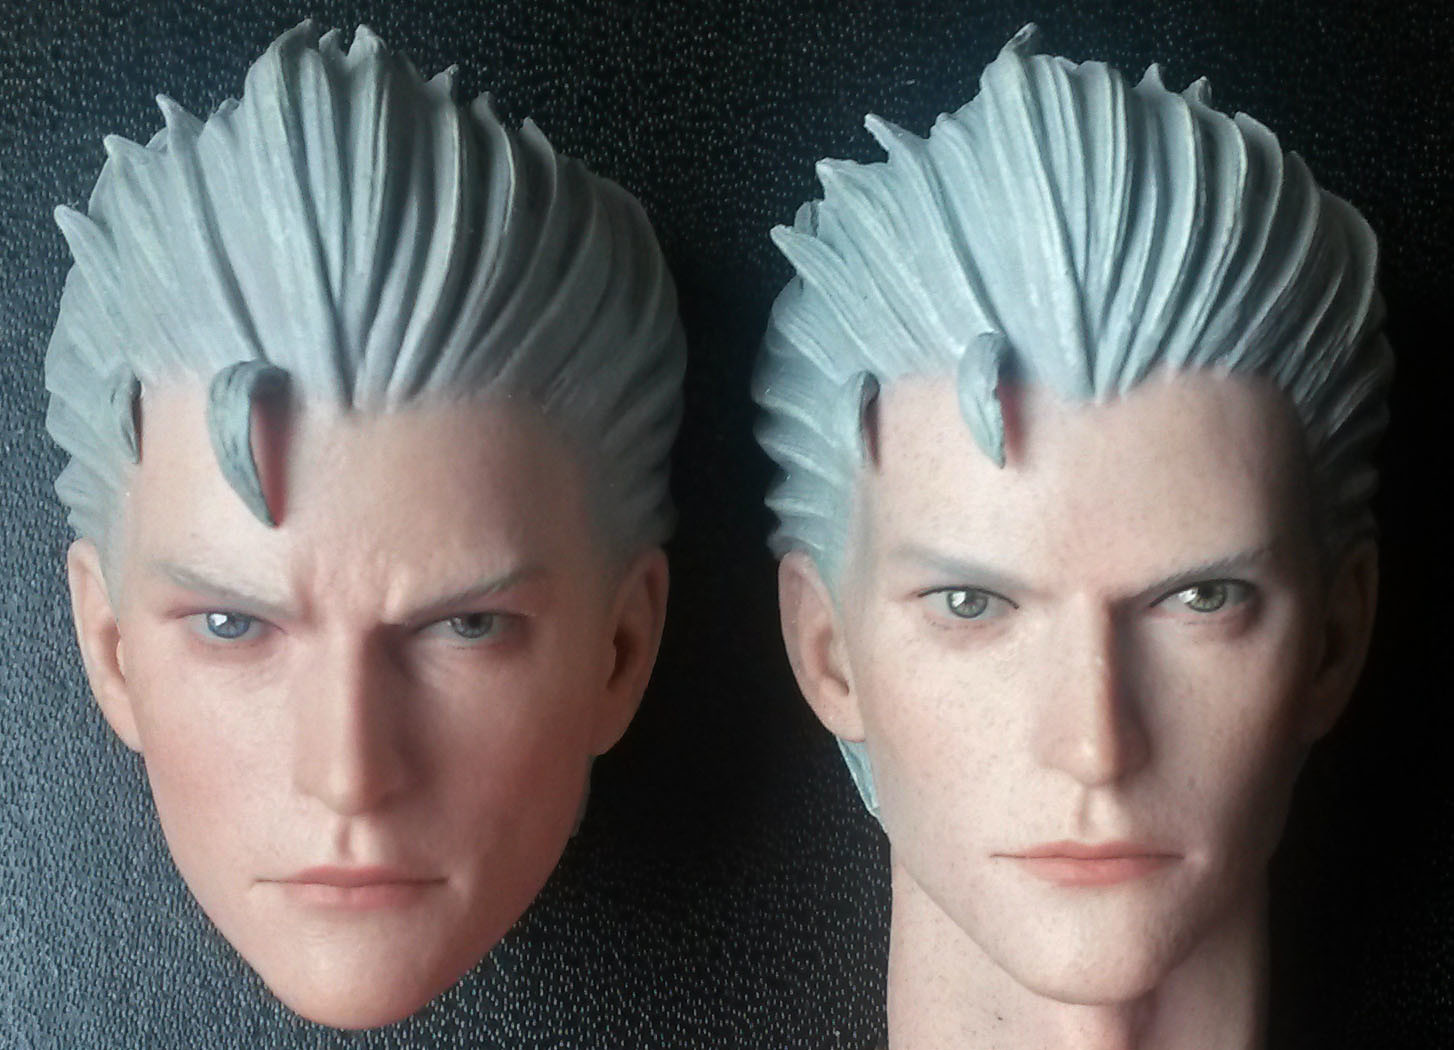 https://static.myfigurecollection.net/upload/pictures/2020/08/04/2489265.jpeg